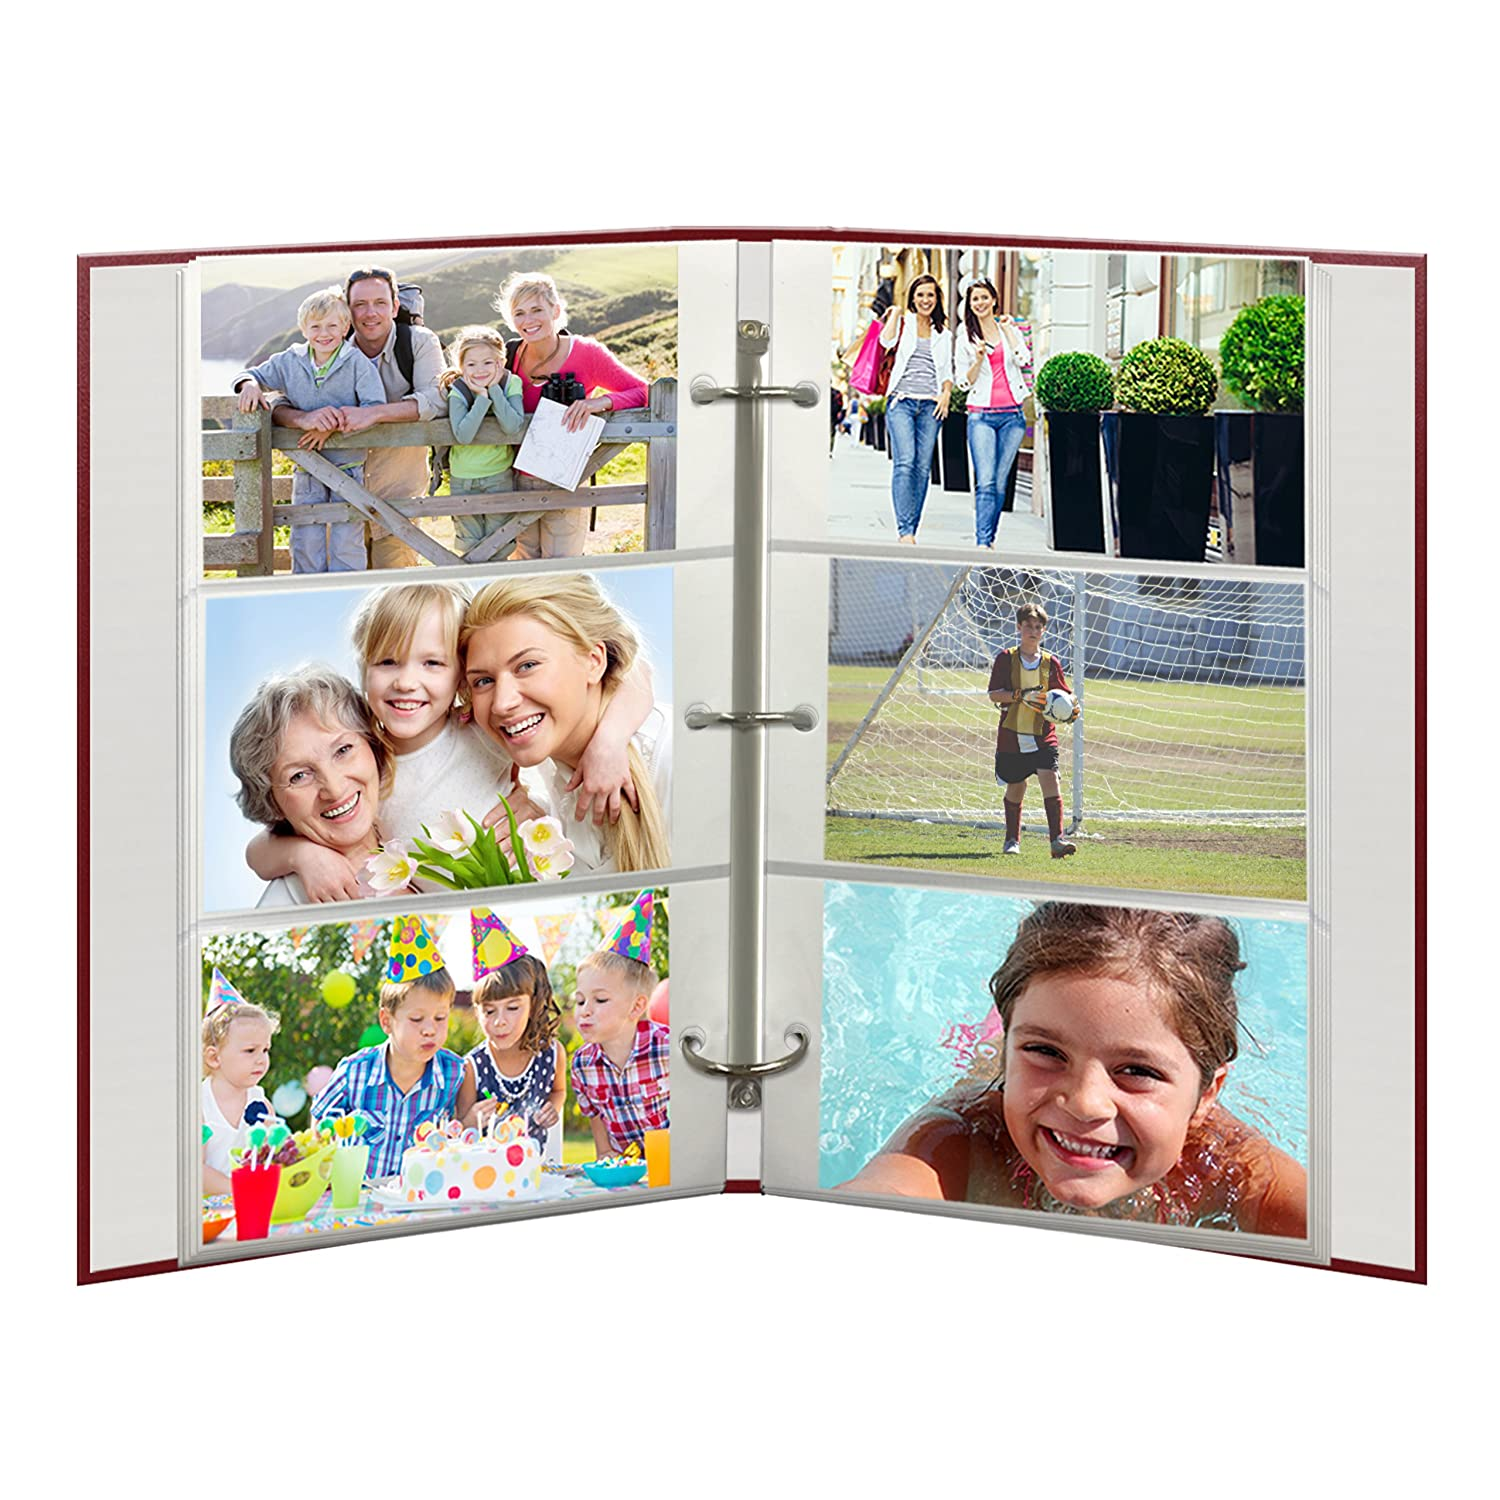 B000XUNEPA Refill Pages for STC-46, STC-46D, STC-204 and STC-504 Photo Albums 30 Pockets Hold 4x6 Photos 91Xqfrk4RhL